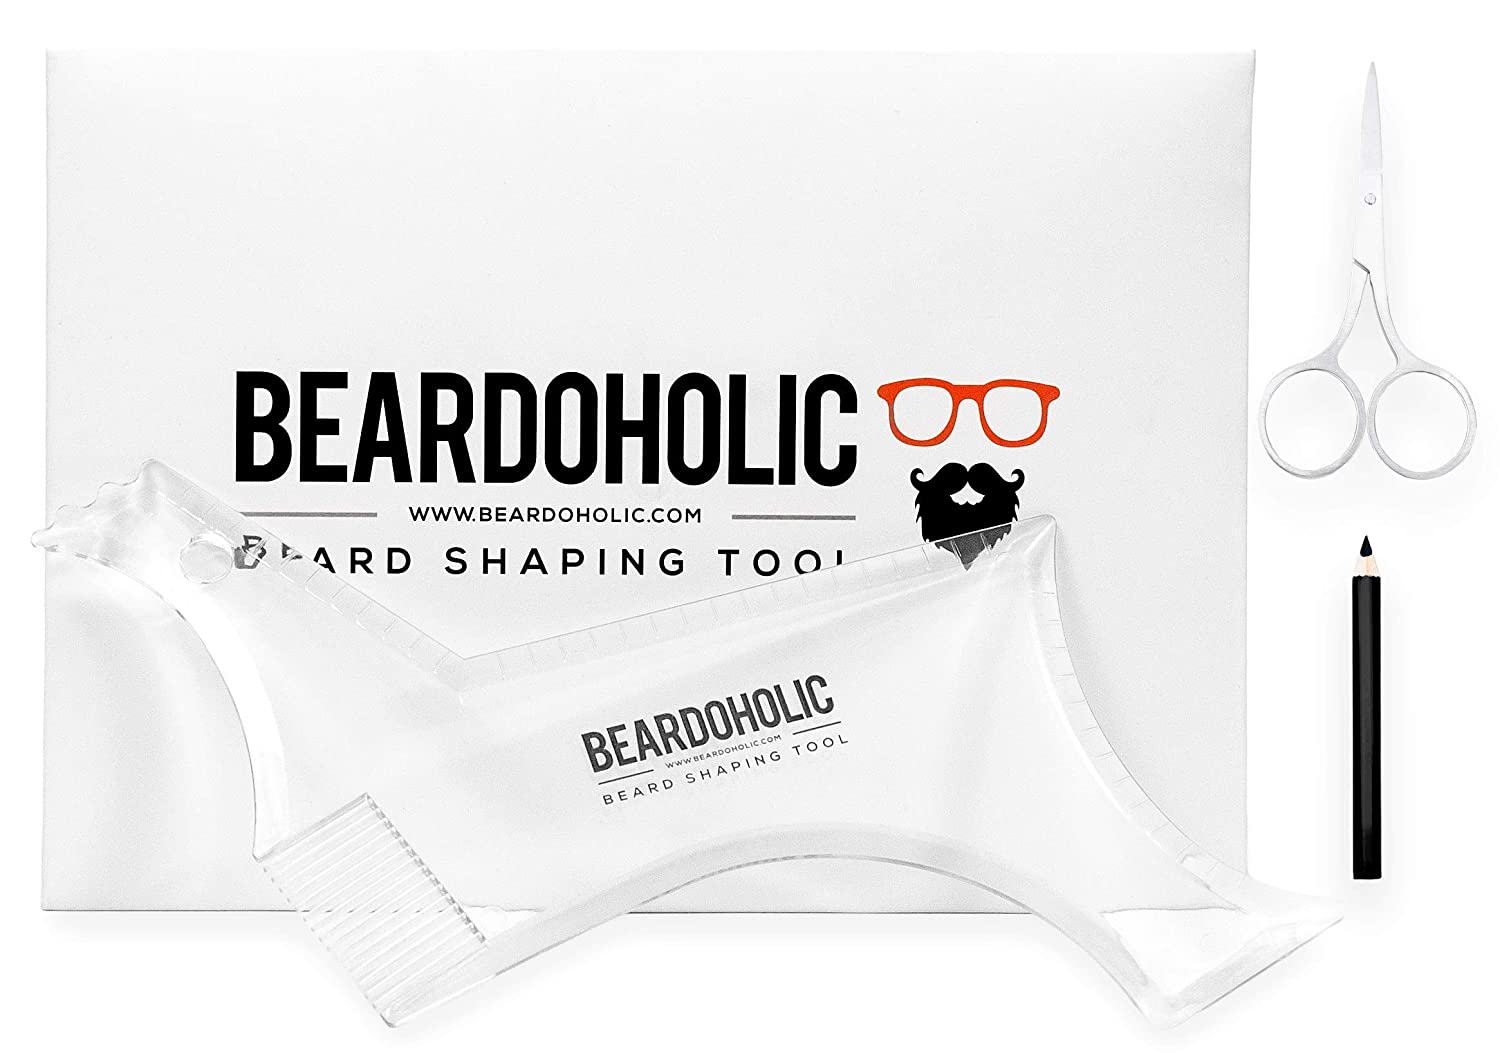 BEARDOHOLIC Beard Shaper, 9 in 1 Beard Shaping Tool with Lineup Pencil and Scissors, Transparent for Perfectly Precise Lines